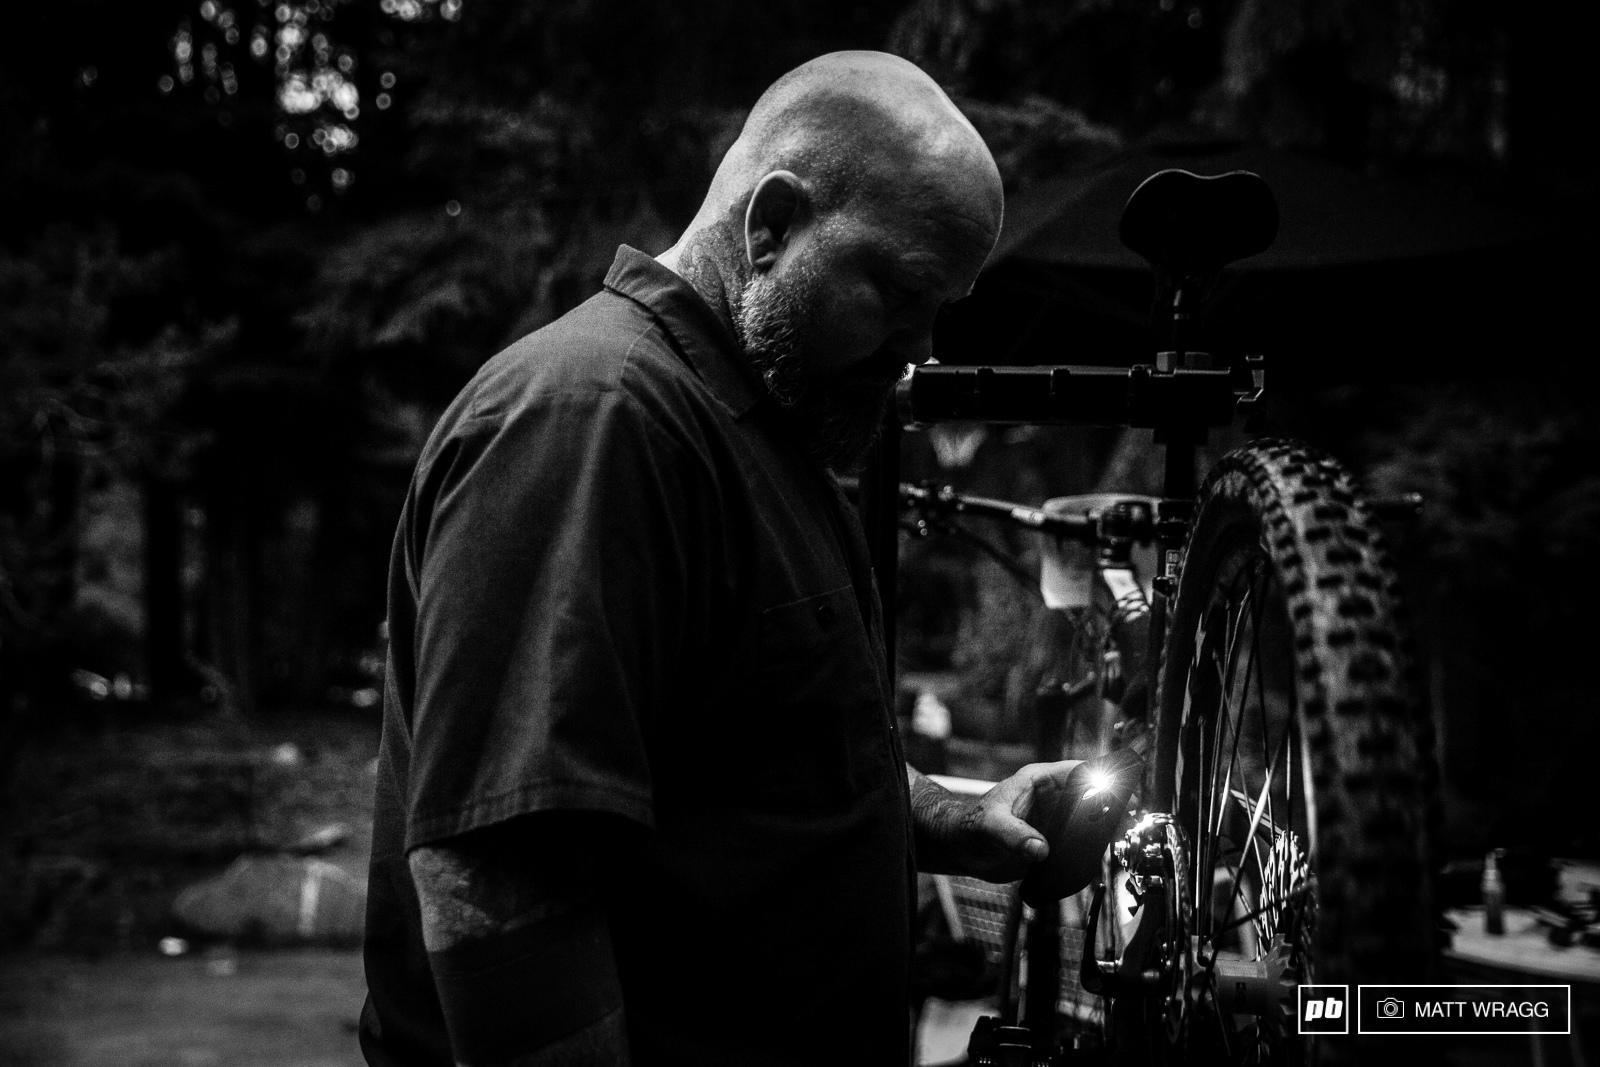 Saturday was a late night for the mechanics getting the bikes ready for the big day.